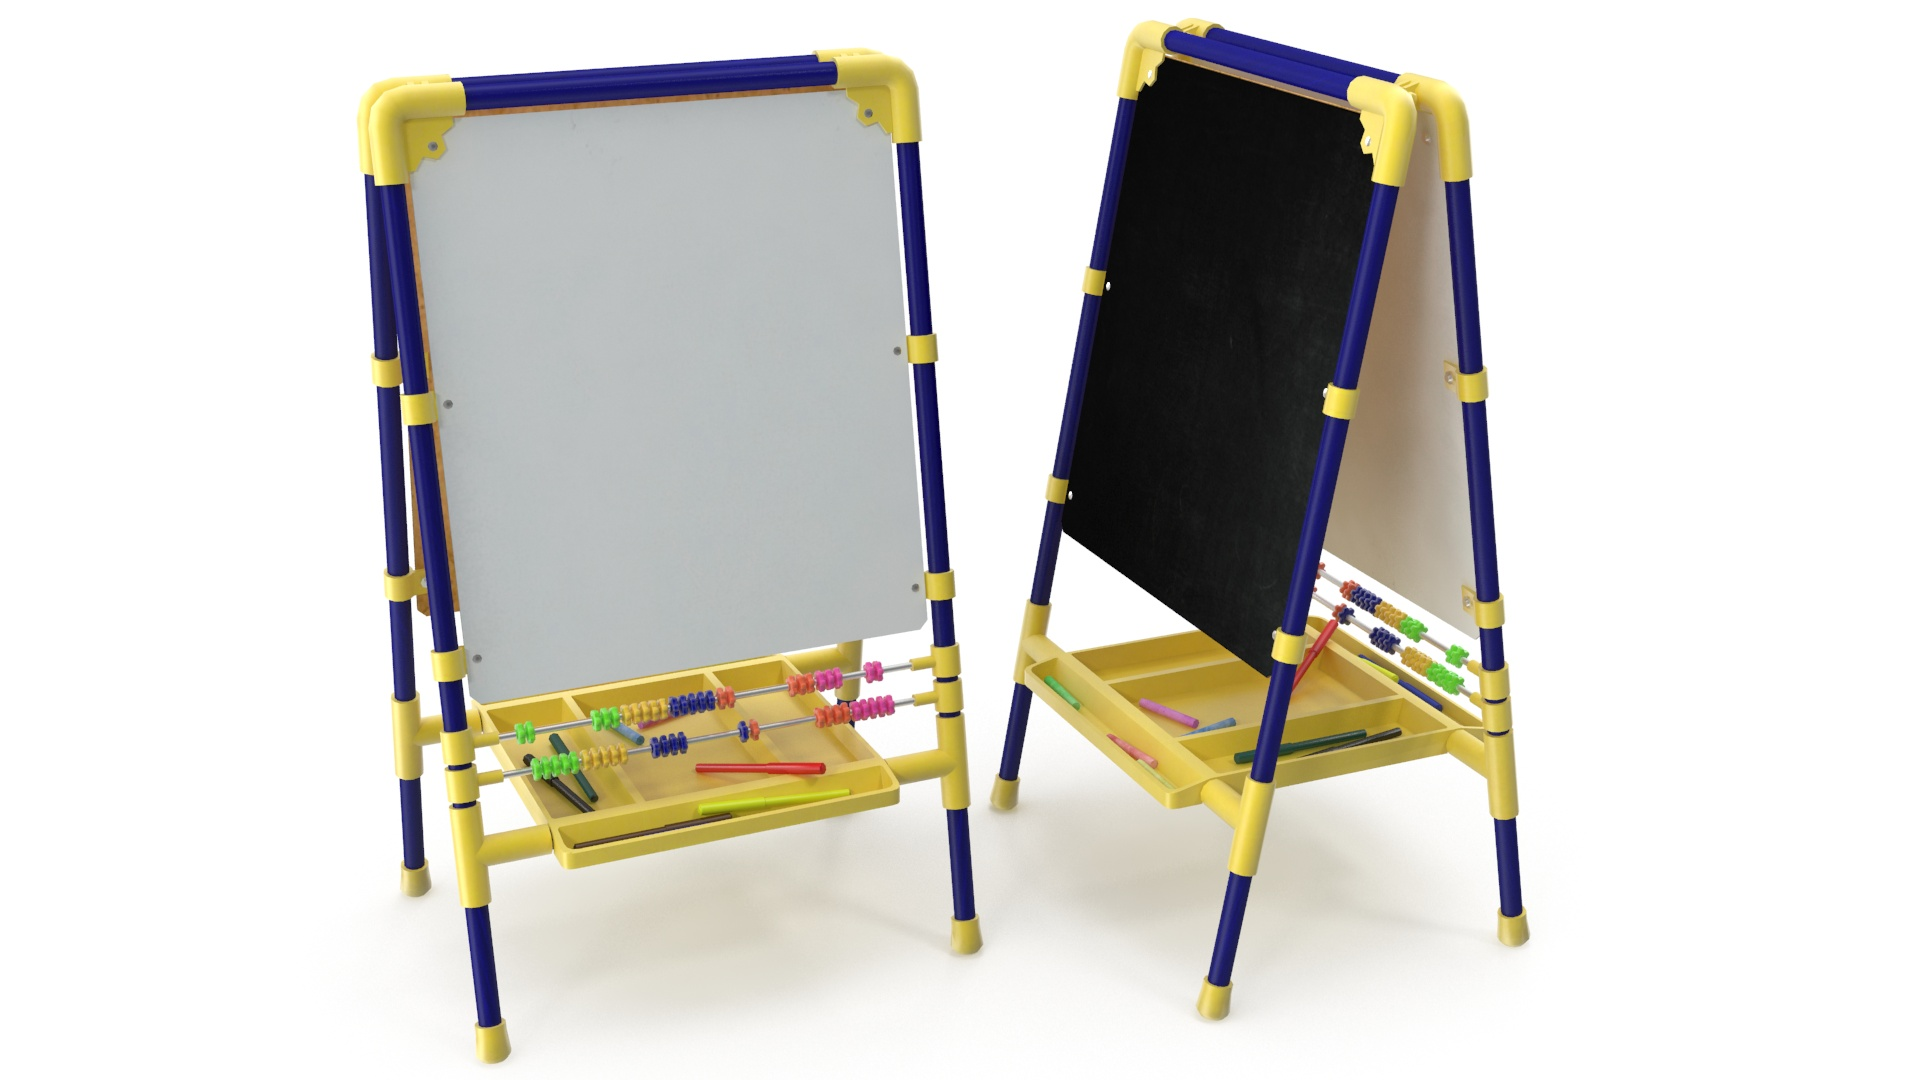 Childrens drawing board 3d model  263602